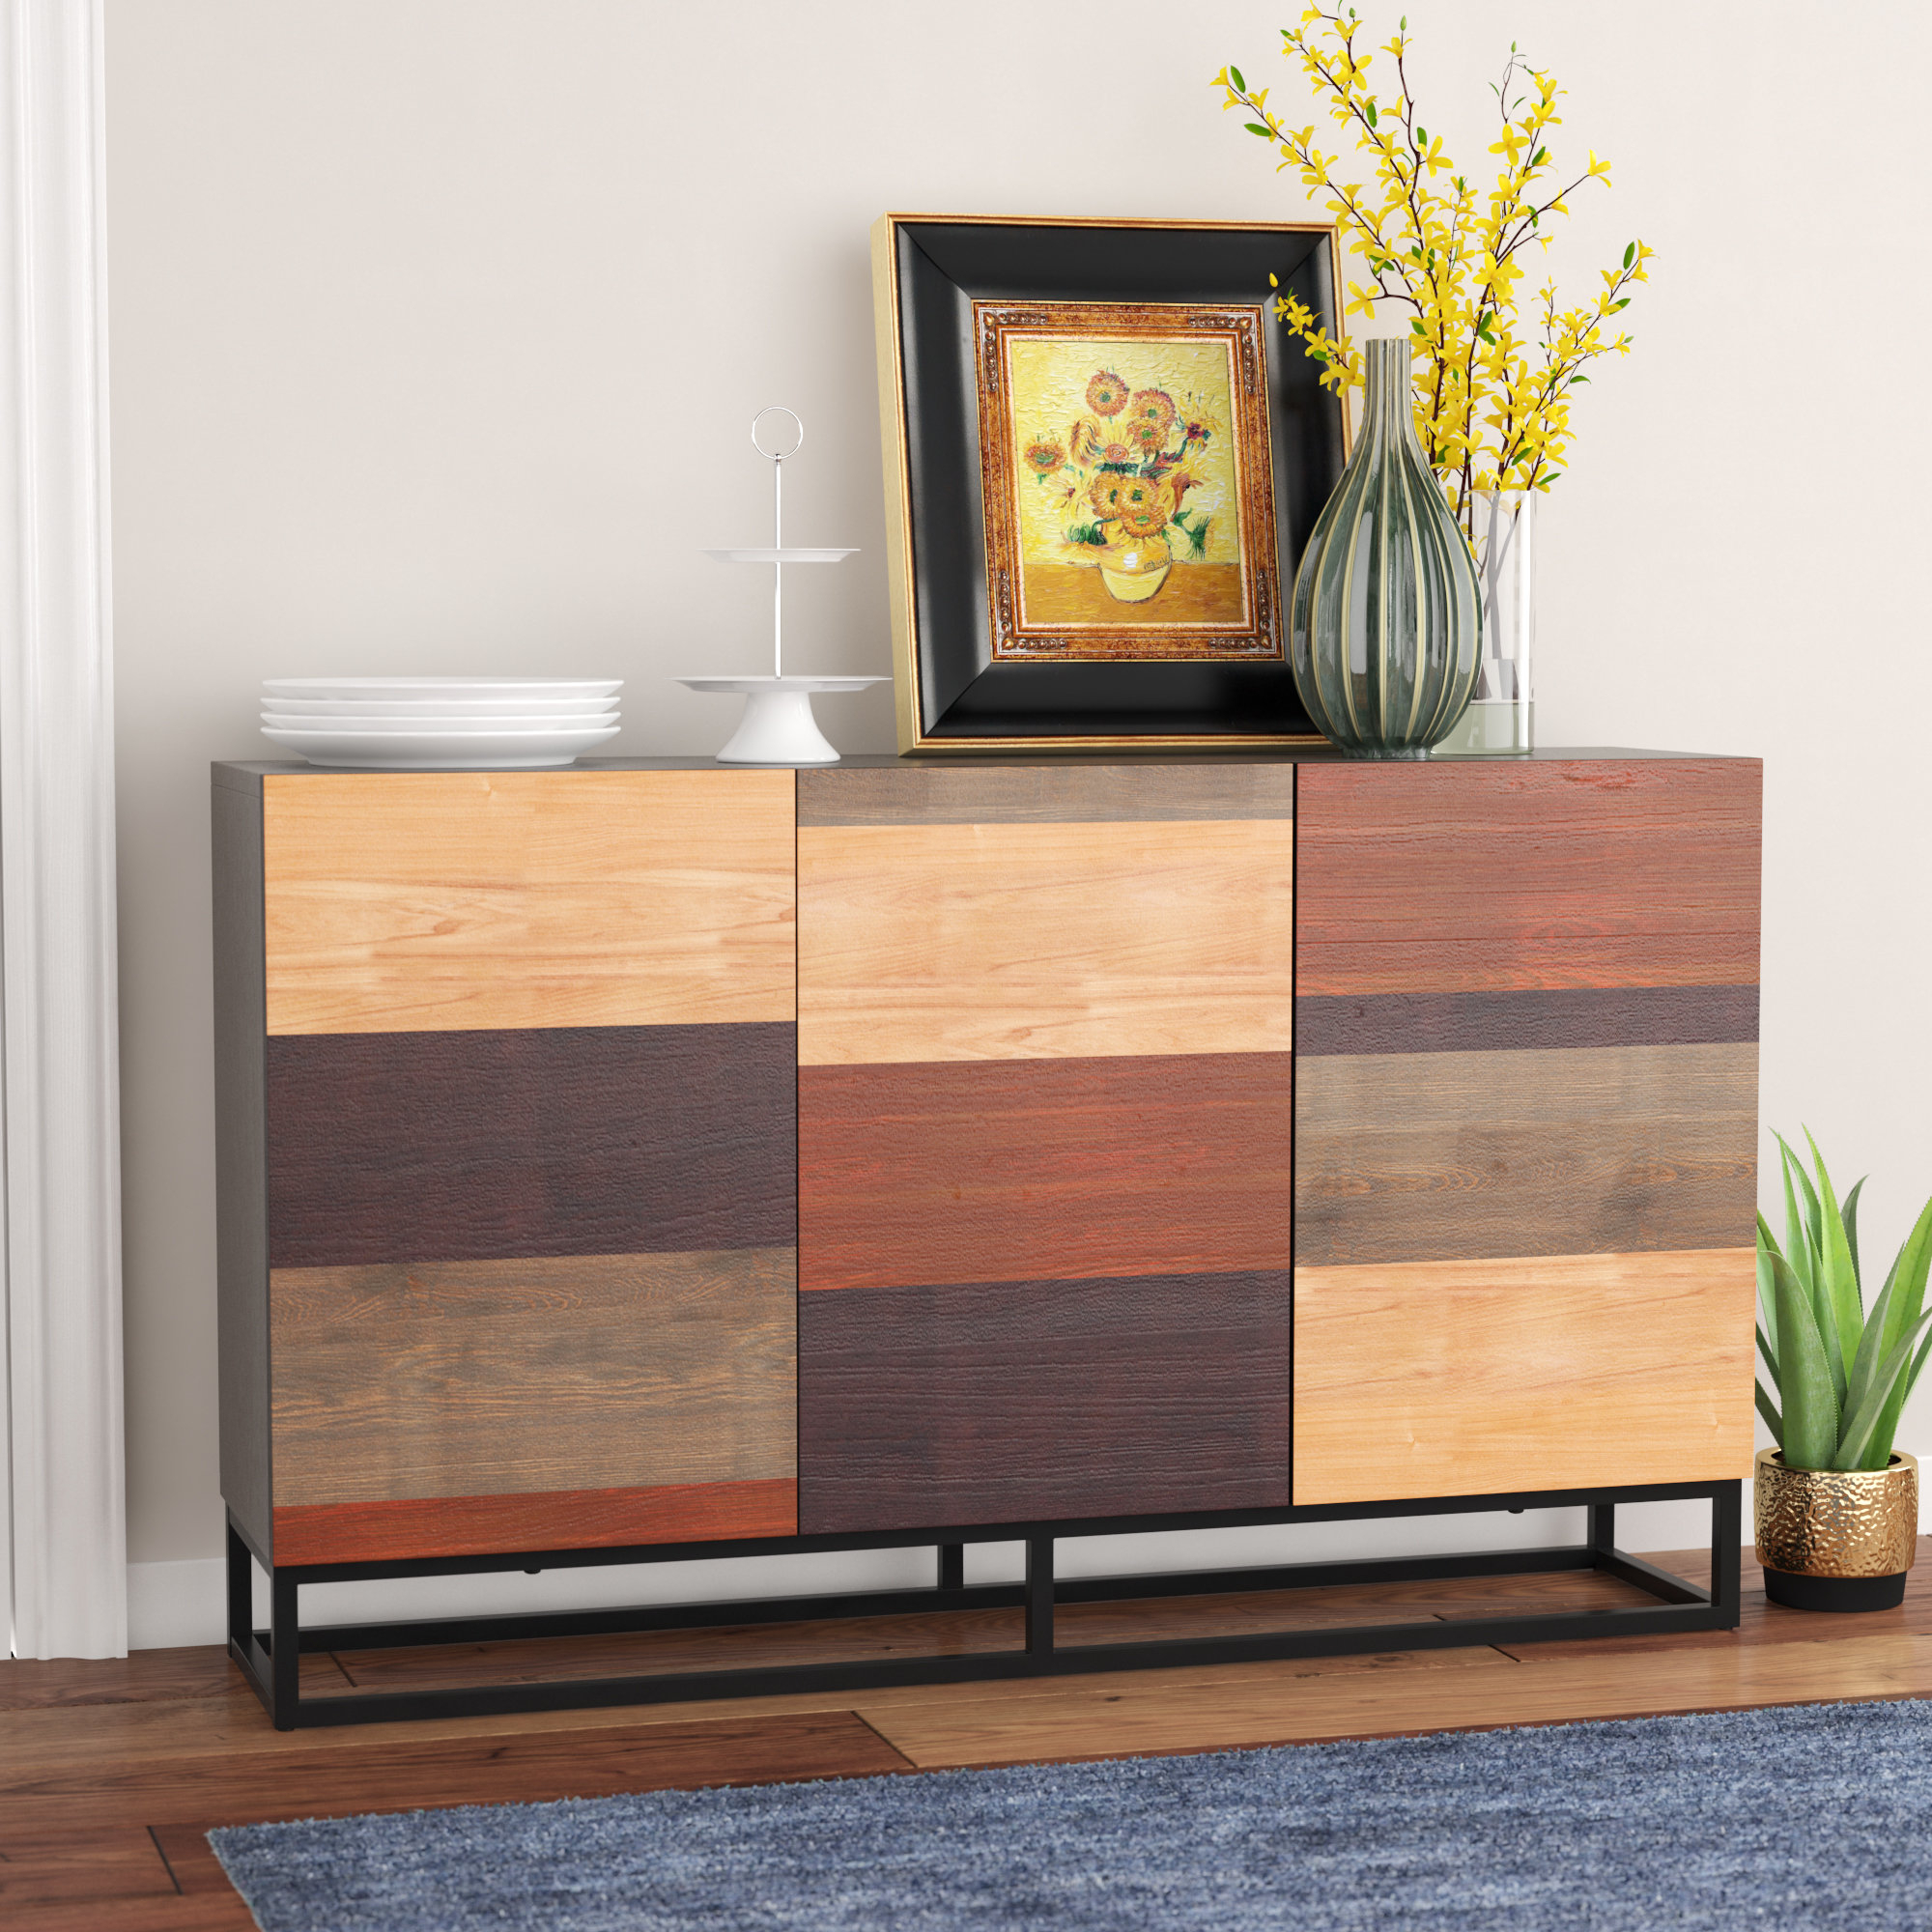 Narrow Dining Room Sideboards | Wayfair For Pineville Dining Sideboards (View 15 of 20)